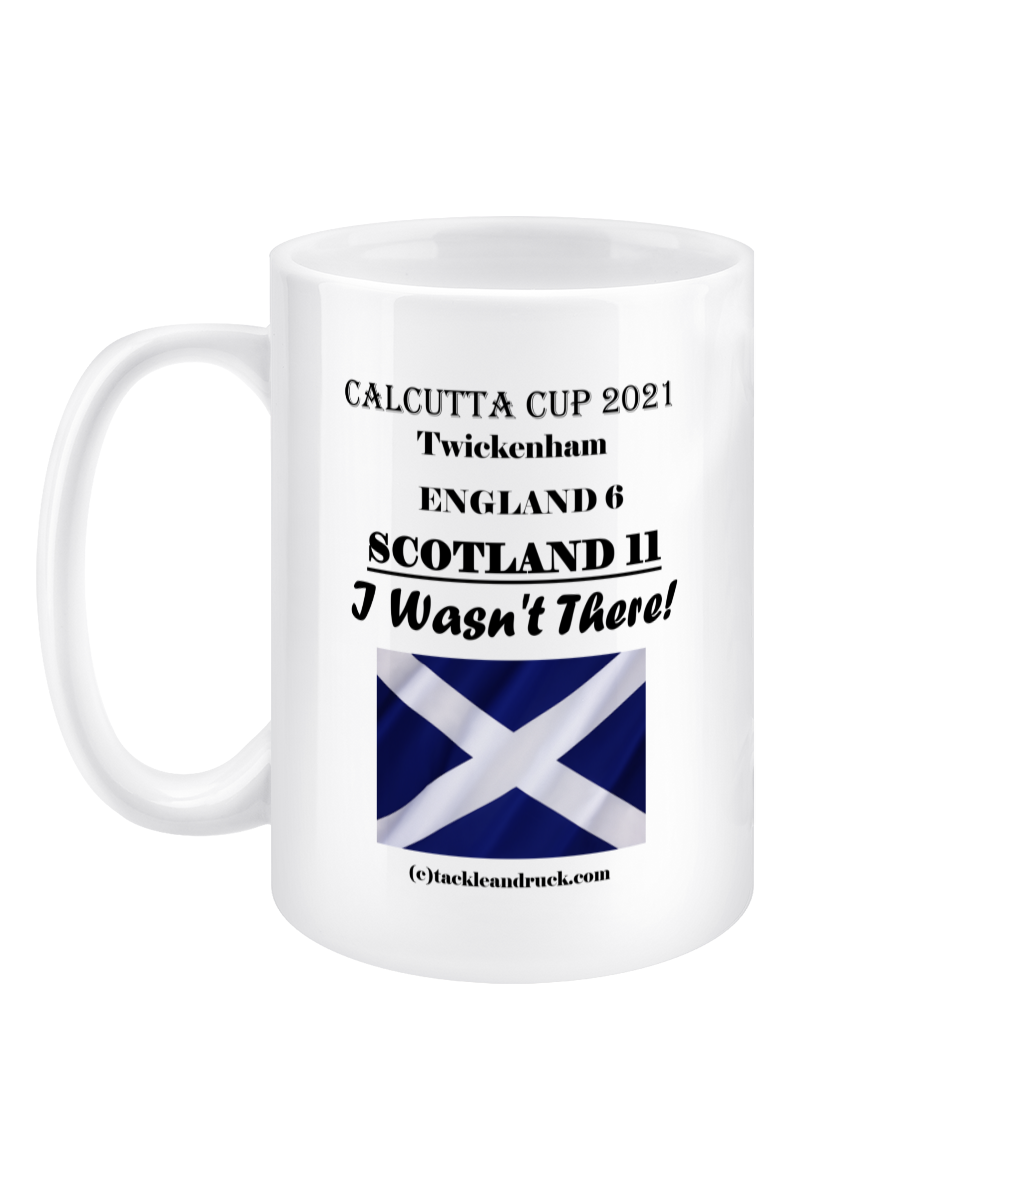 Tackle and Ruck - Calcutta Cup 2021 Win - I Wasnt There